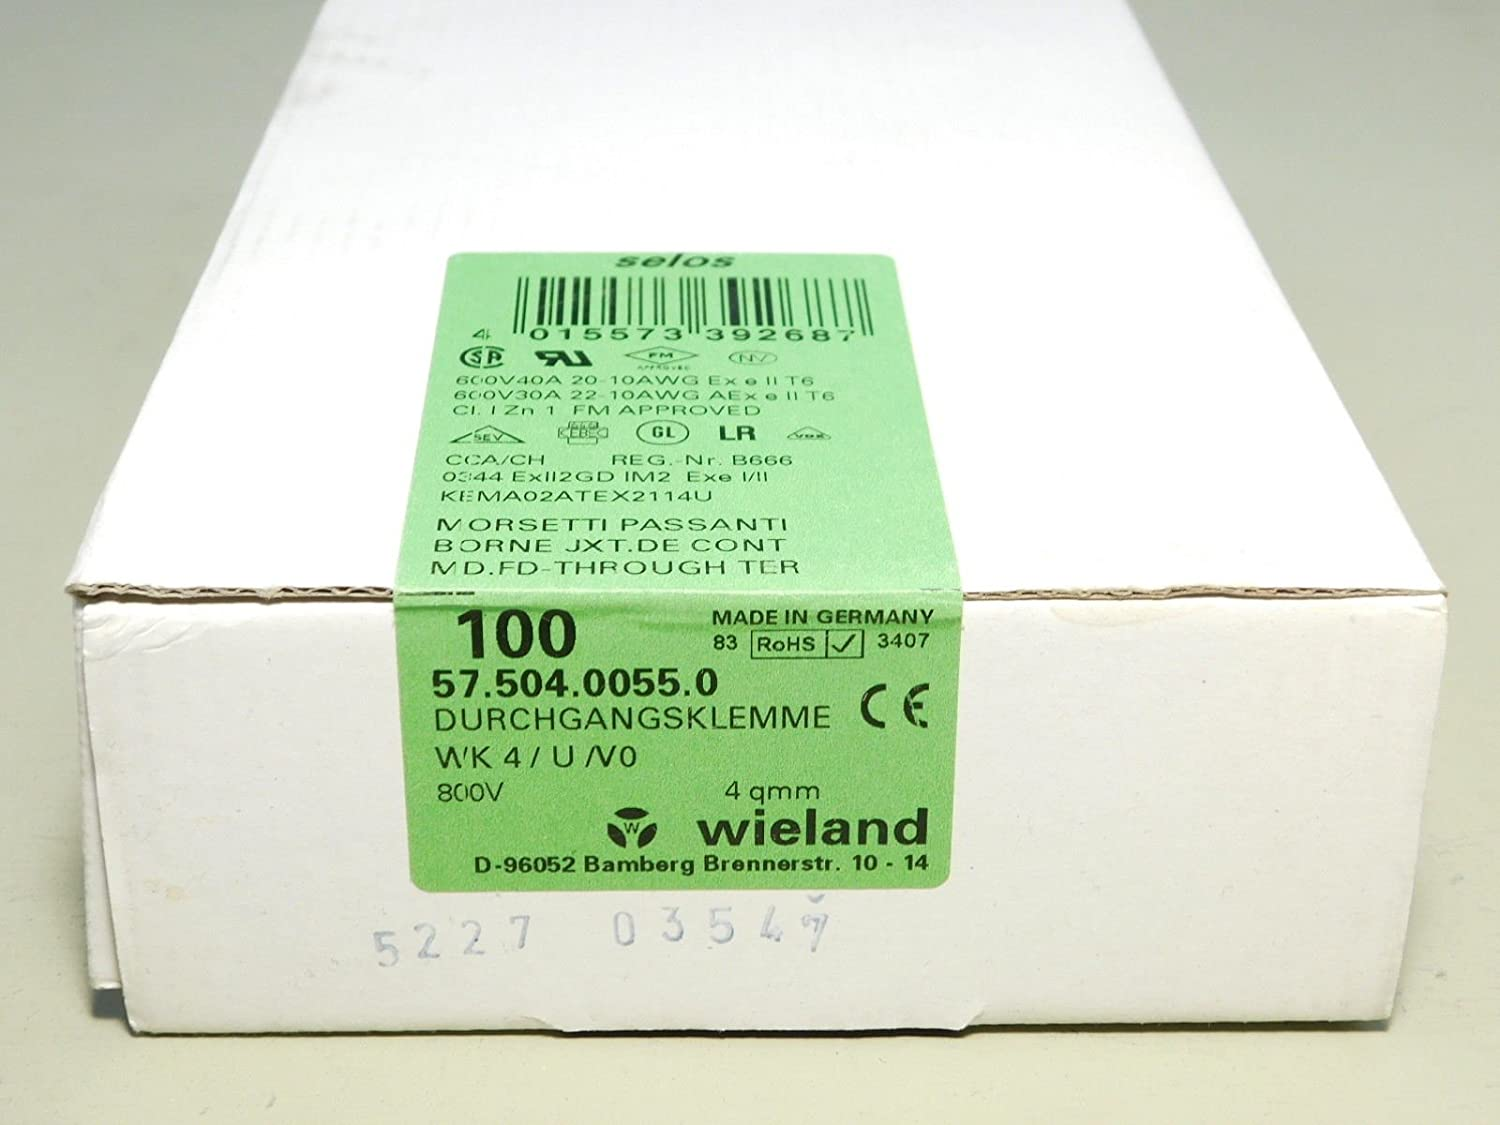 (100) BRAND NEW - BOX OF 100x PCS Wieland Selos 57.504.0055.0 Terminal Blocks